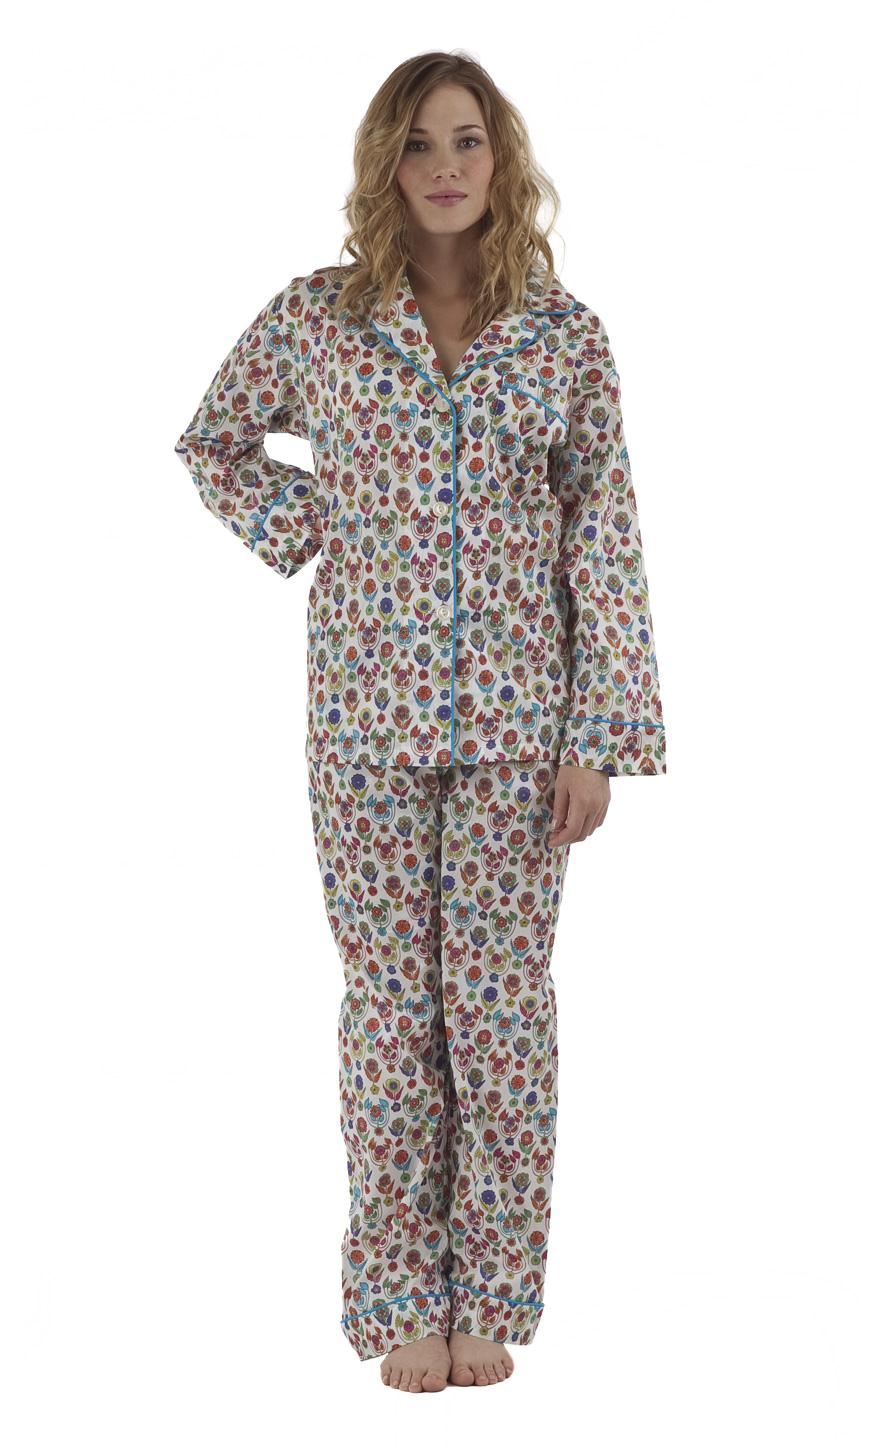 ladies night dress pyjamas - photo #31